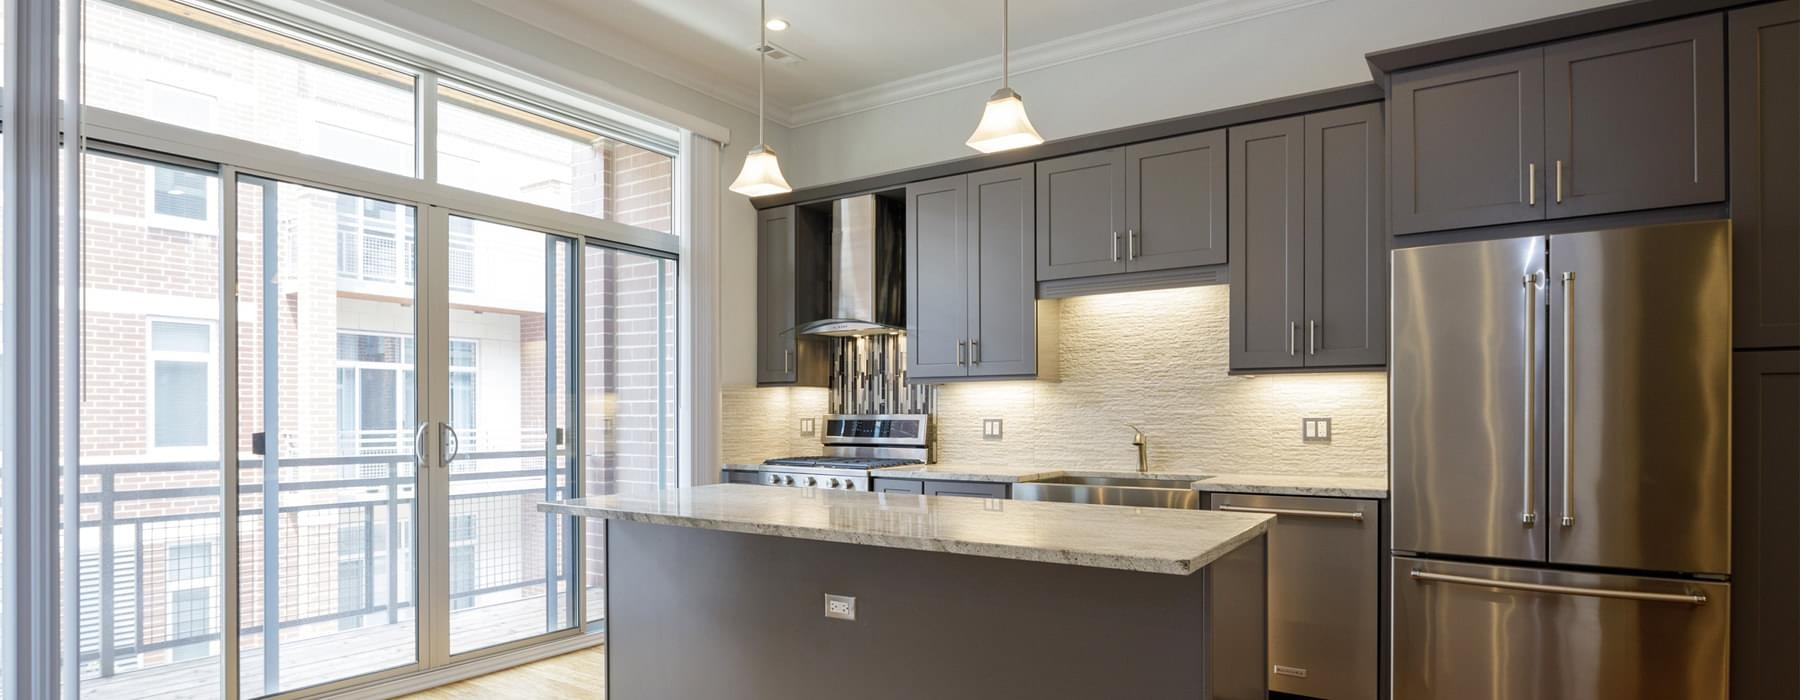 spacious kitchen area brightly lit by glass windows and overhead fixtures